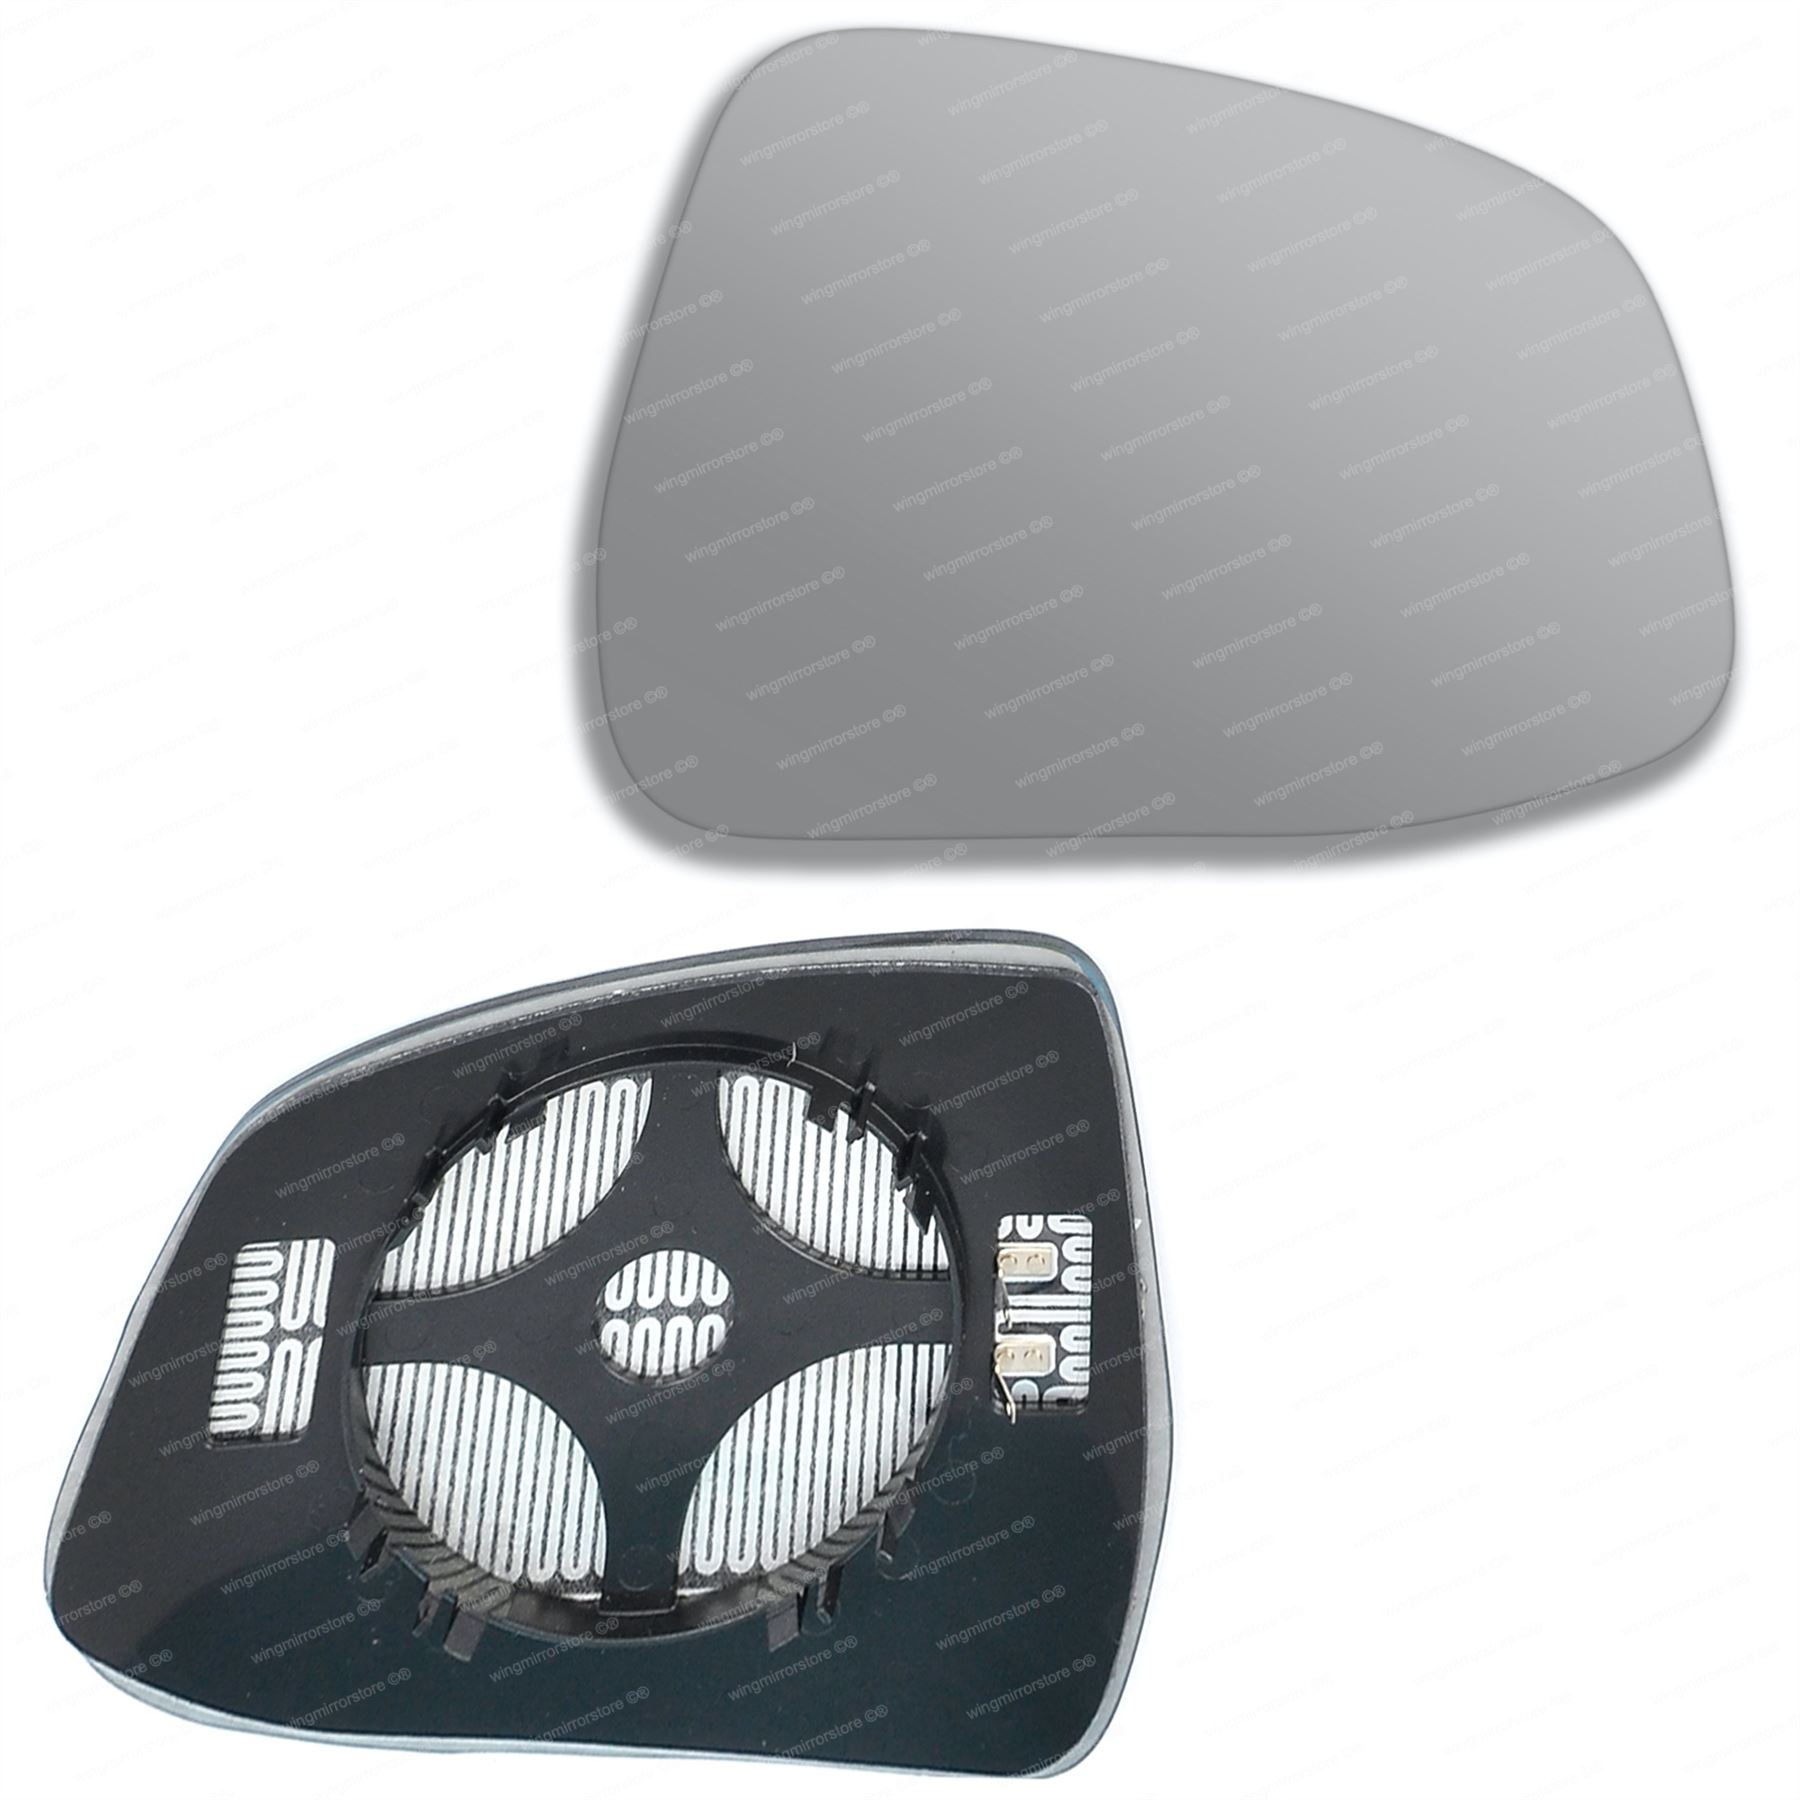 HEATED /& BASE PEUGEOT PARTNER WING MIRROR GLASS SILVER 1996-/>2008 RIGHT SIDE